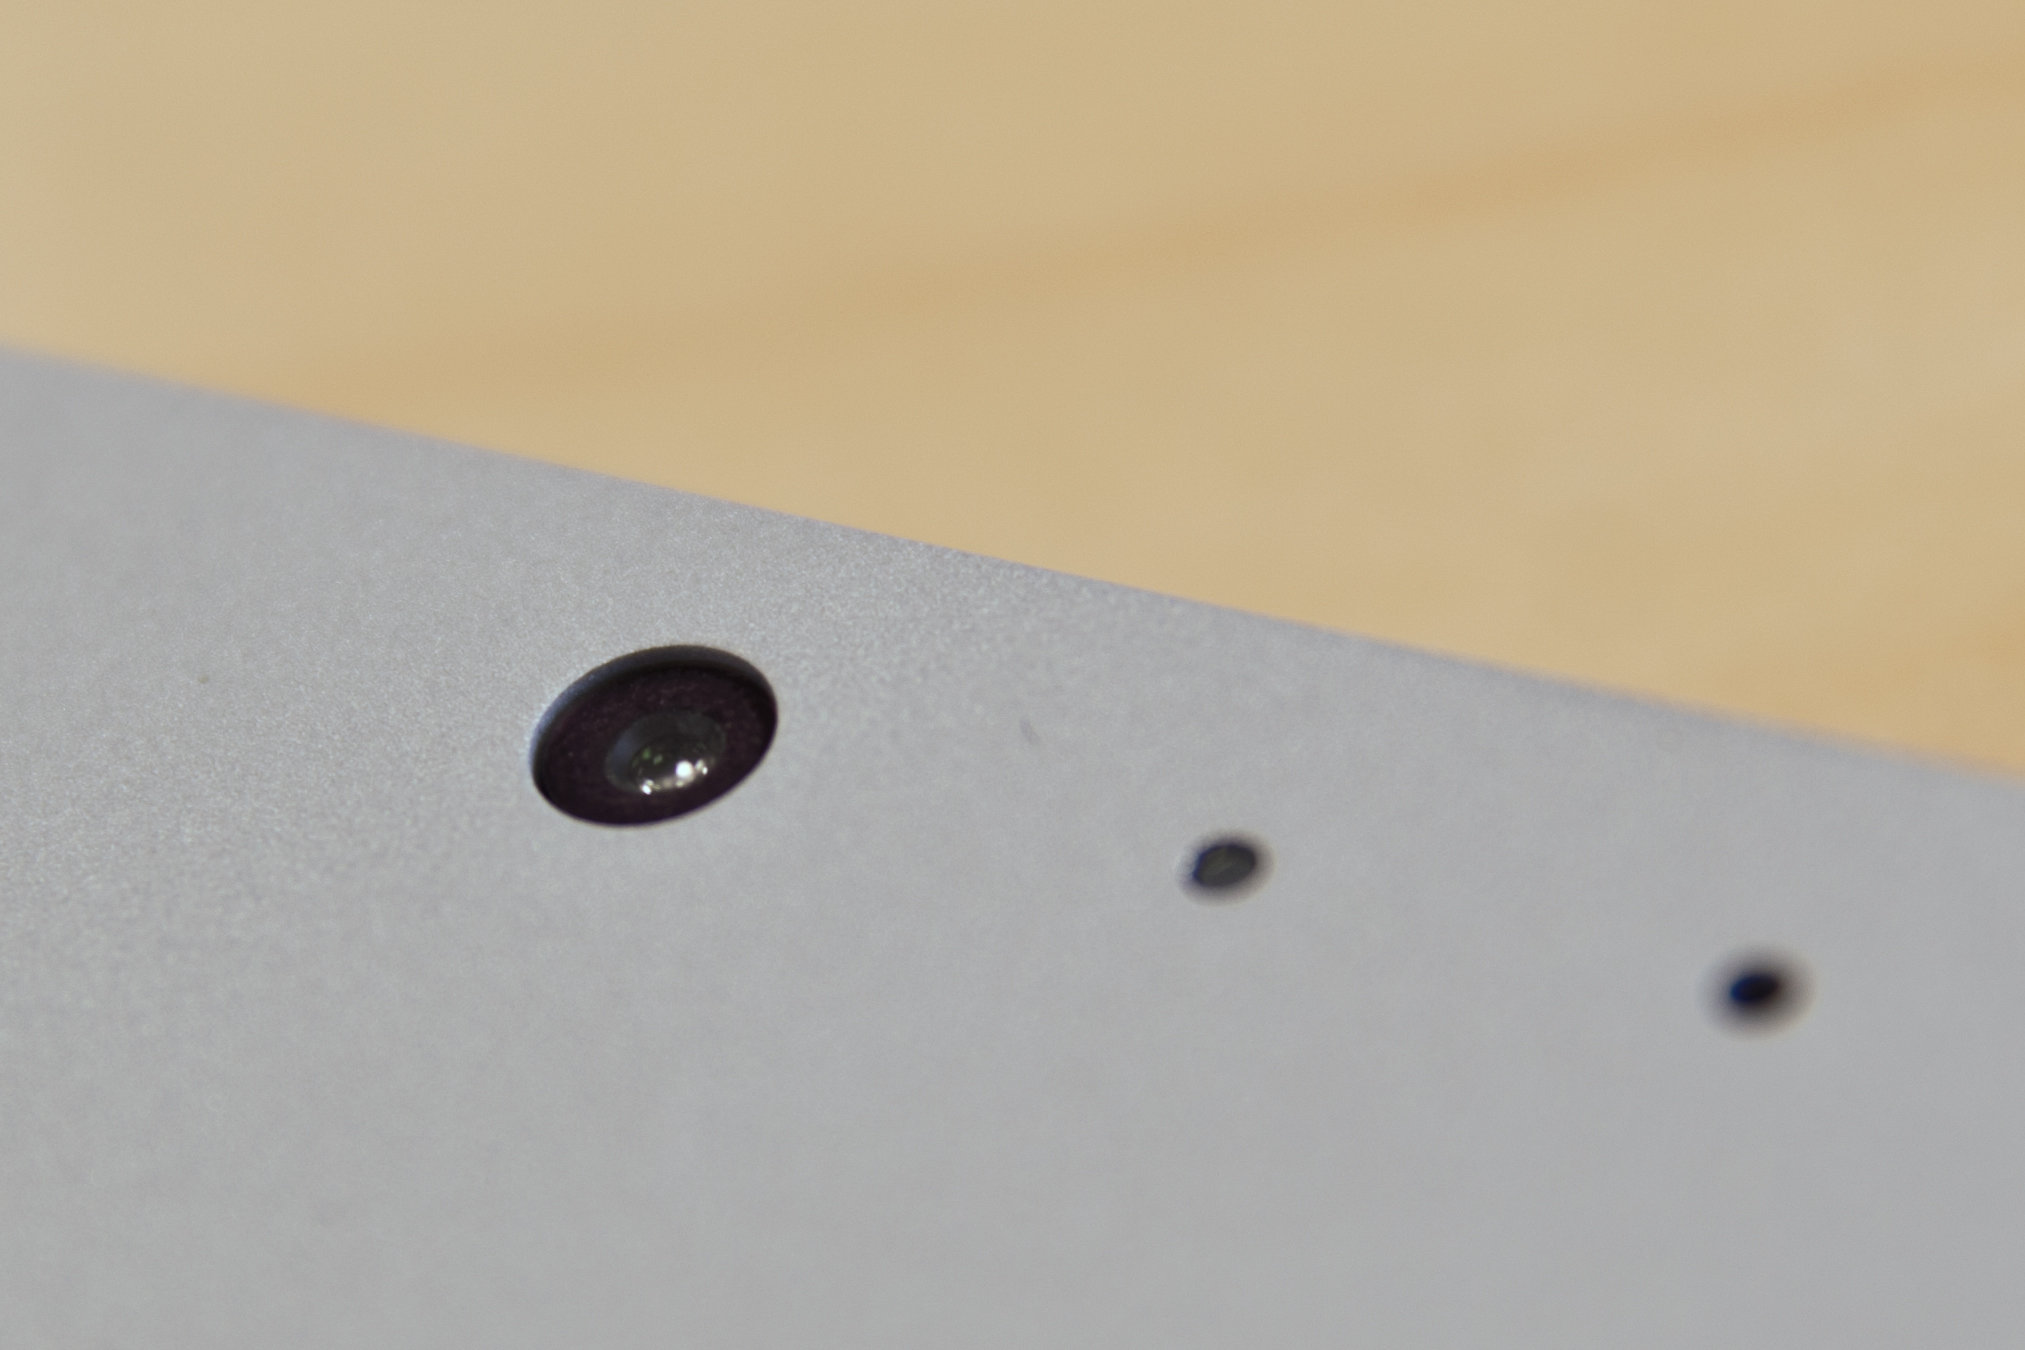 A closer look at the Microsoft Surface Pro 3's camera.